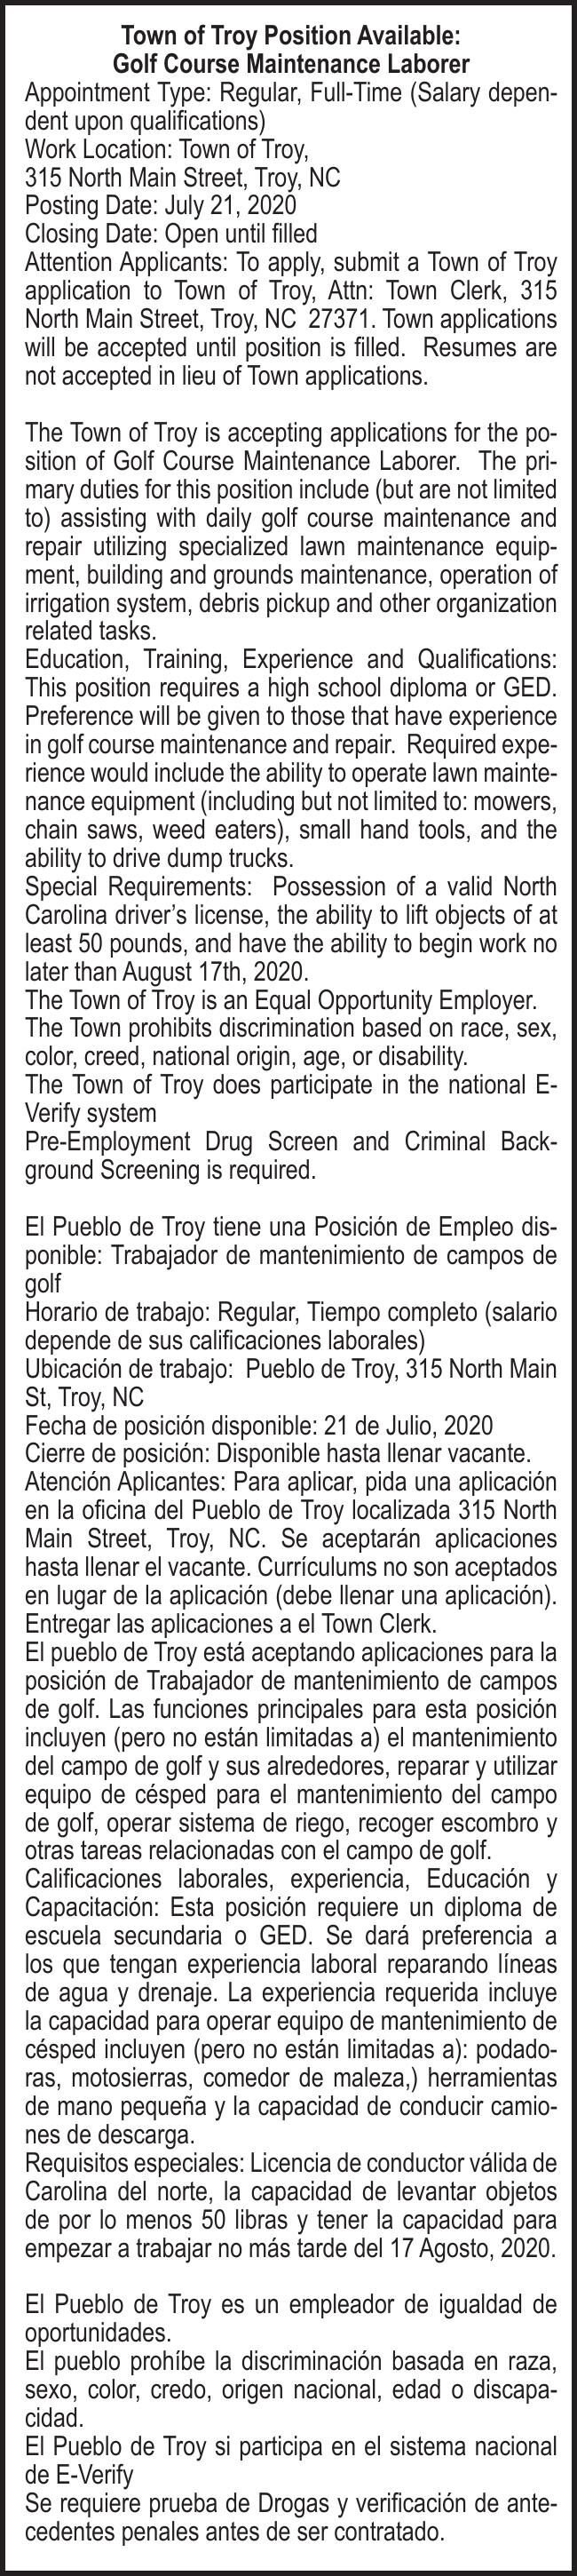 Town of Troy Position Available: